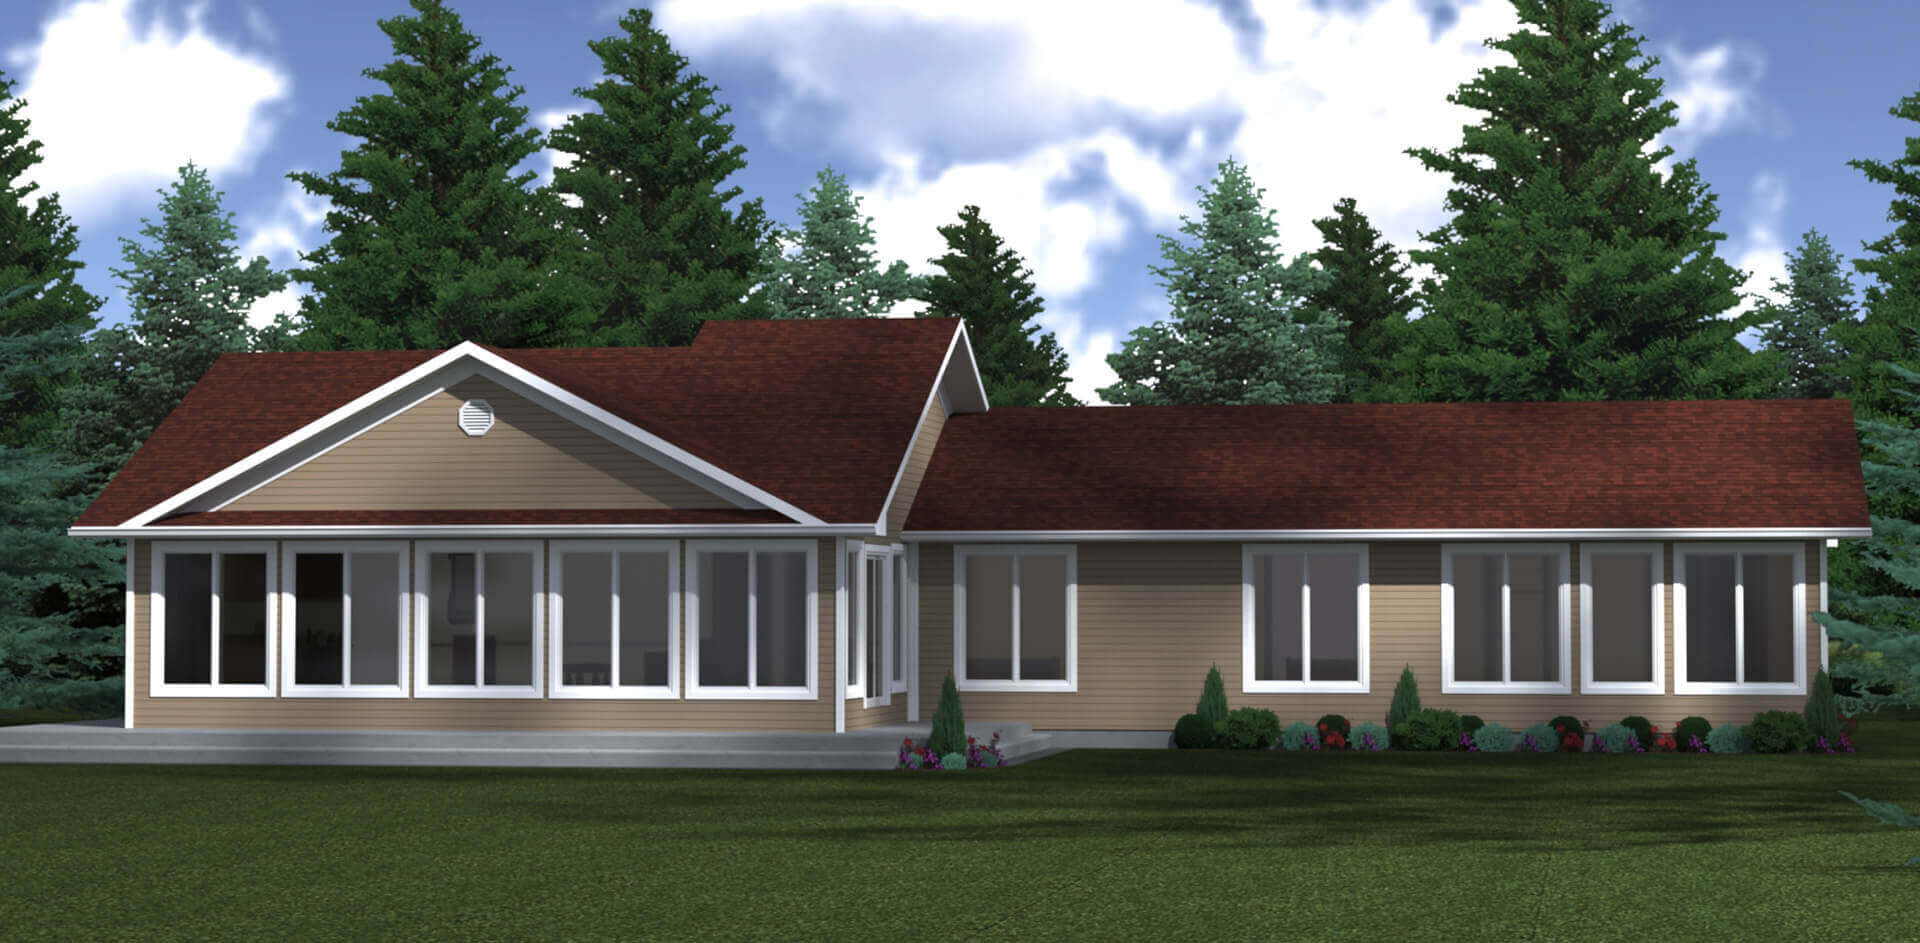 1826 sq.ft. timber mart house exterior rendering